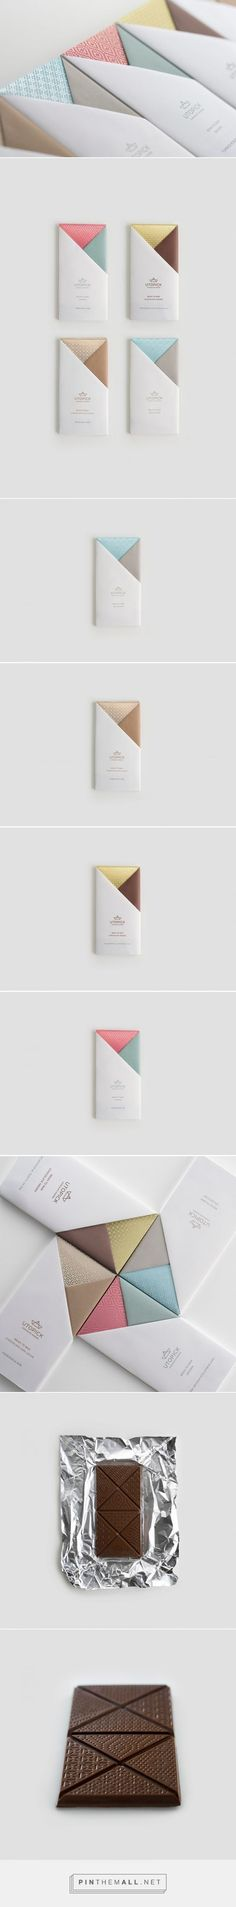 Utopick Chocolates packaging design by Lavernia & Cienfuegos - http://www.packagingoftheworld.com/2017/04/utopick-chocolates.html: